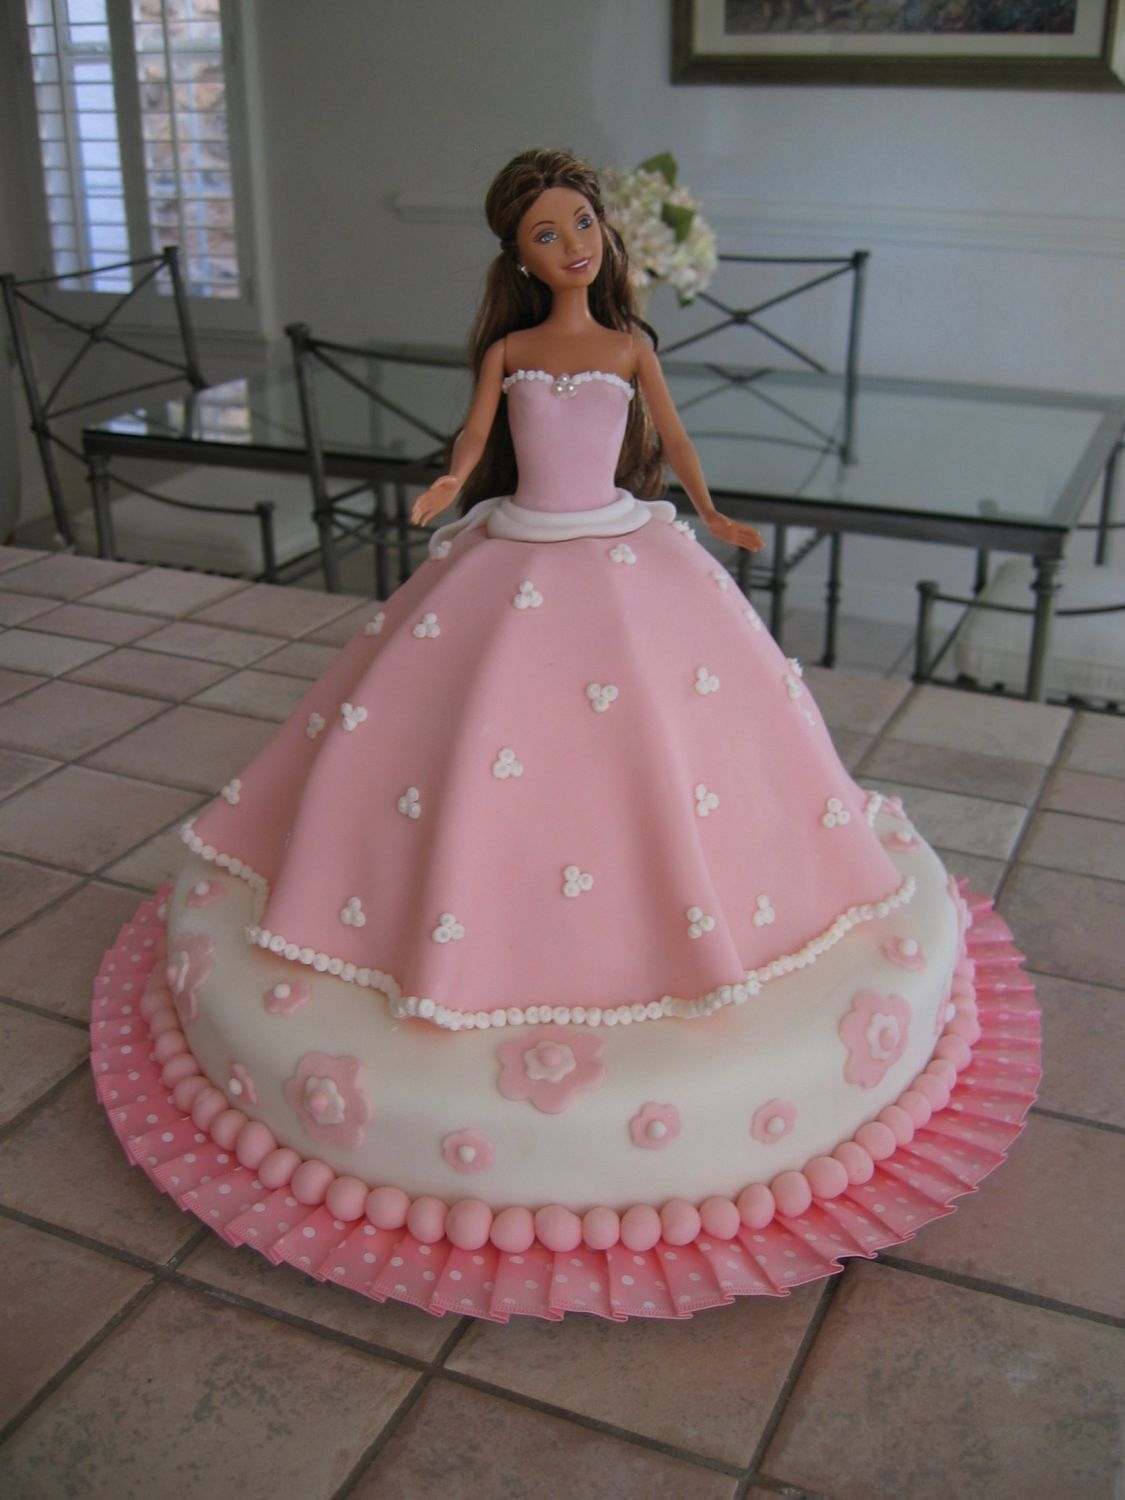 pink barbie cake my first fondant cake had a lot of fun barbie cakes for anna in 2018. Black Bedroom Furniture Sets. Home Design Ideas